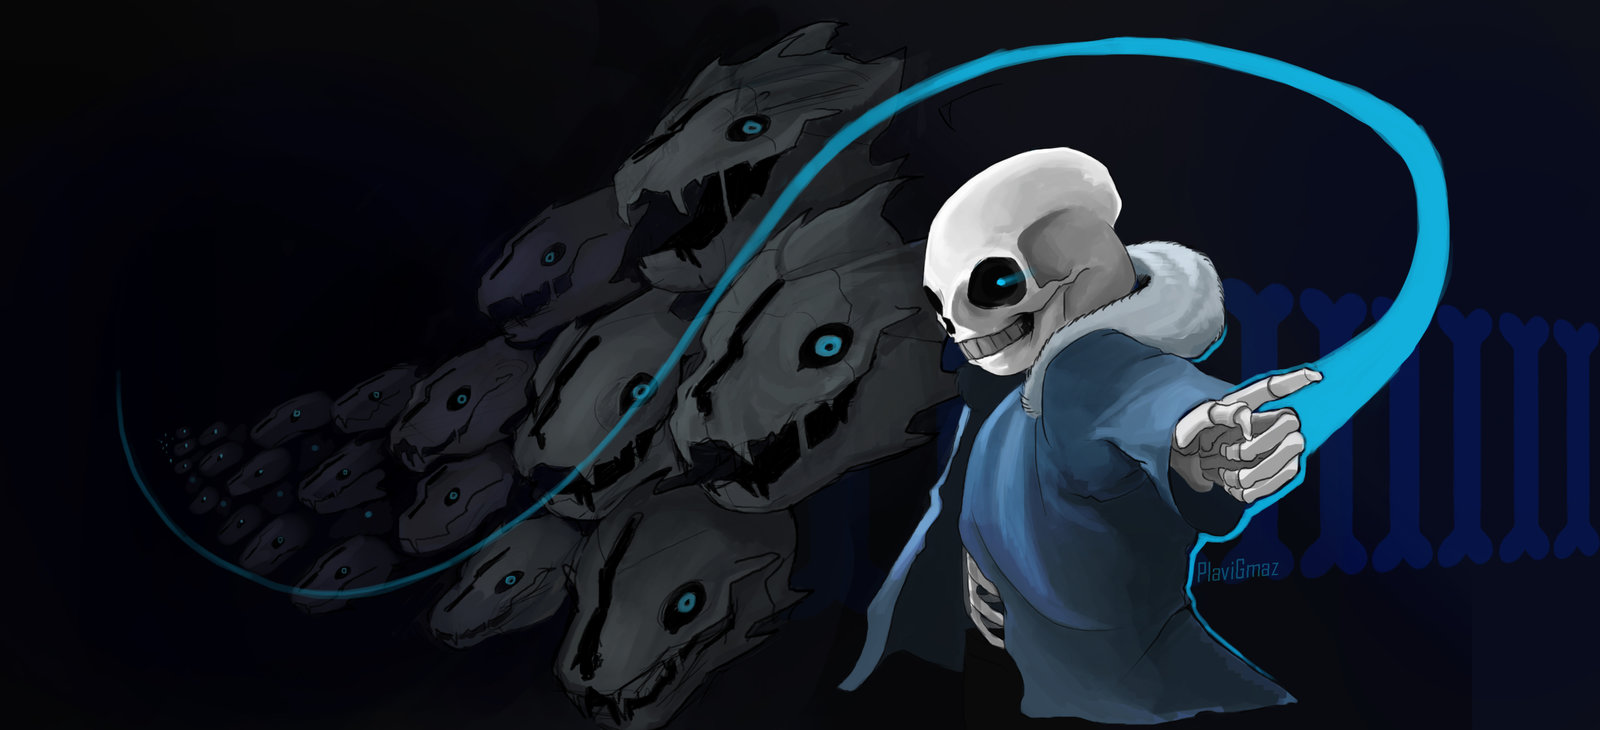 50+] Sans Wallpaper Undertale on WallpaperSafari